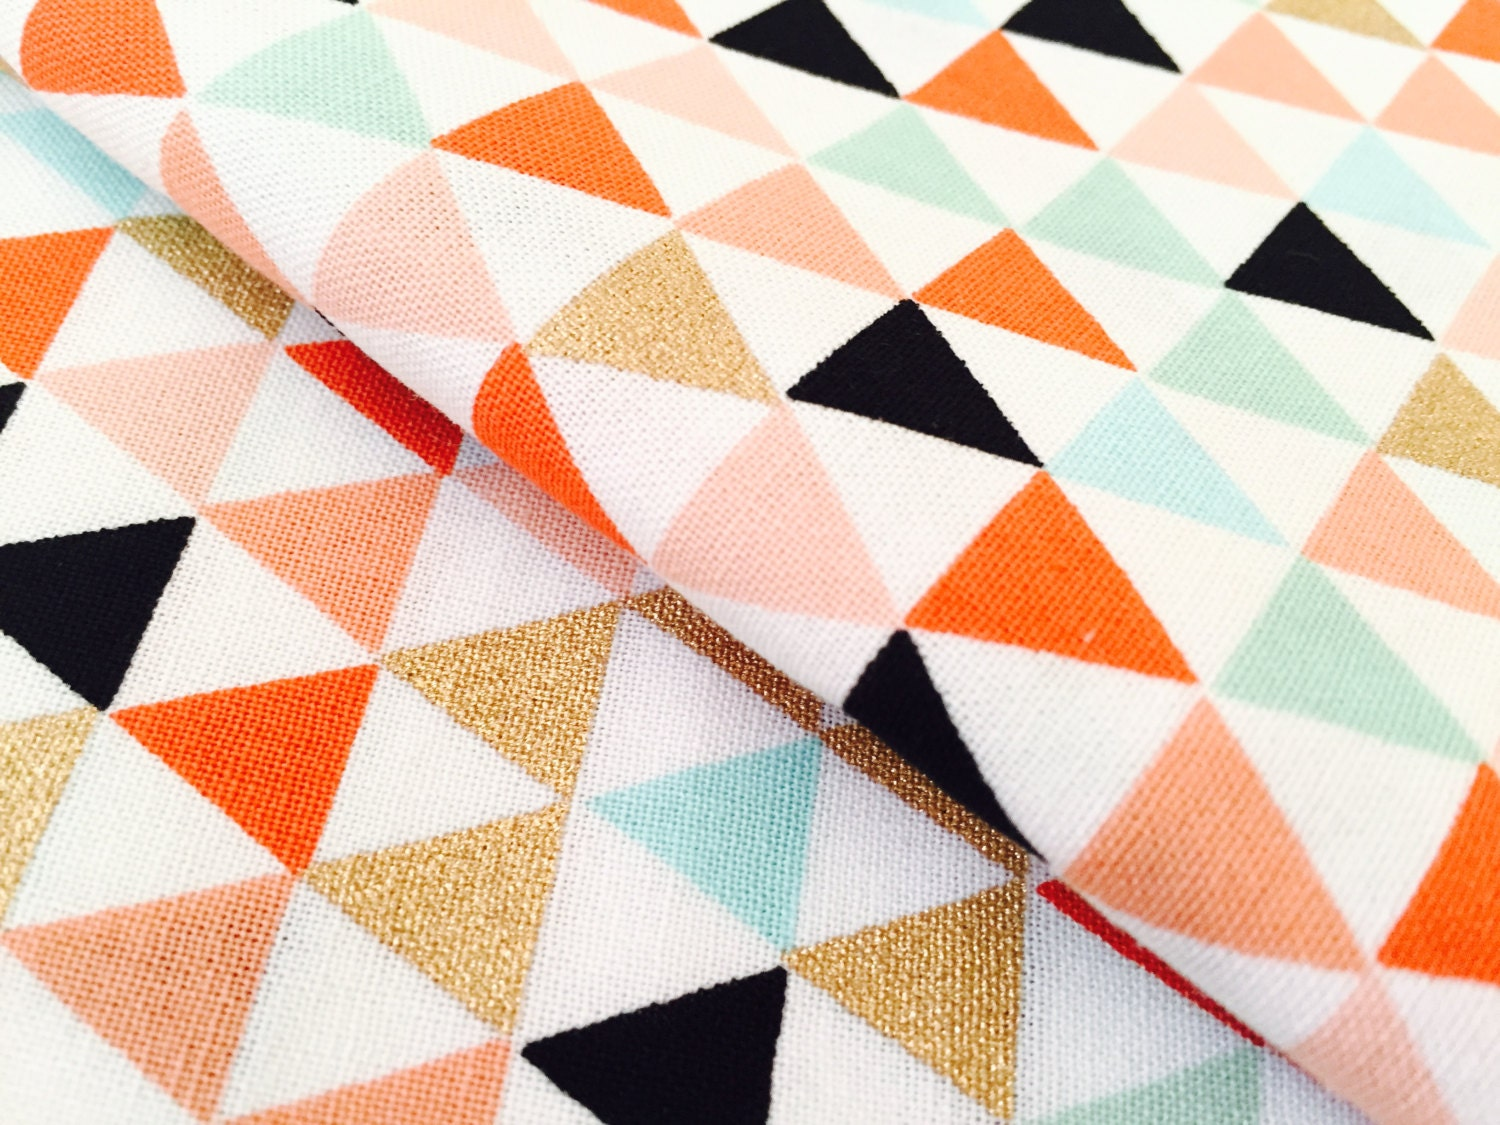 Crib size quilts for sale -  Quilt With Embroidery Gold Mini Triangle W Fun Colors Fabric Premium Apparel Cotton With Gold Coral